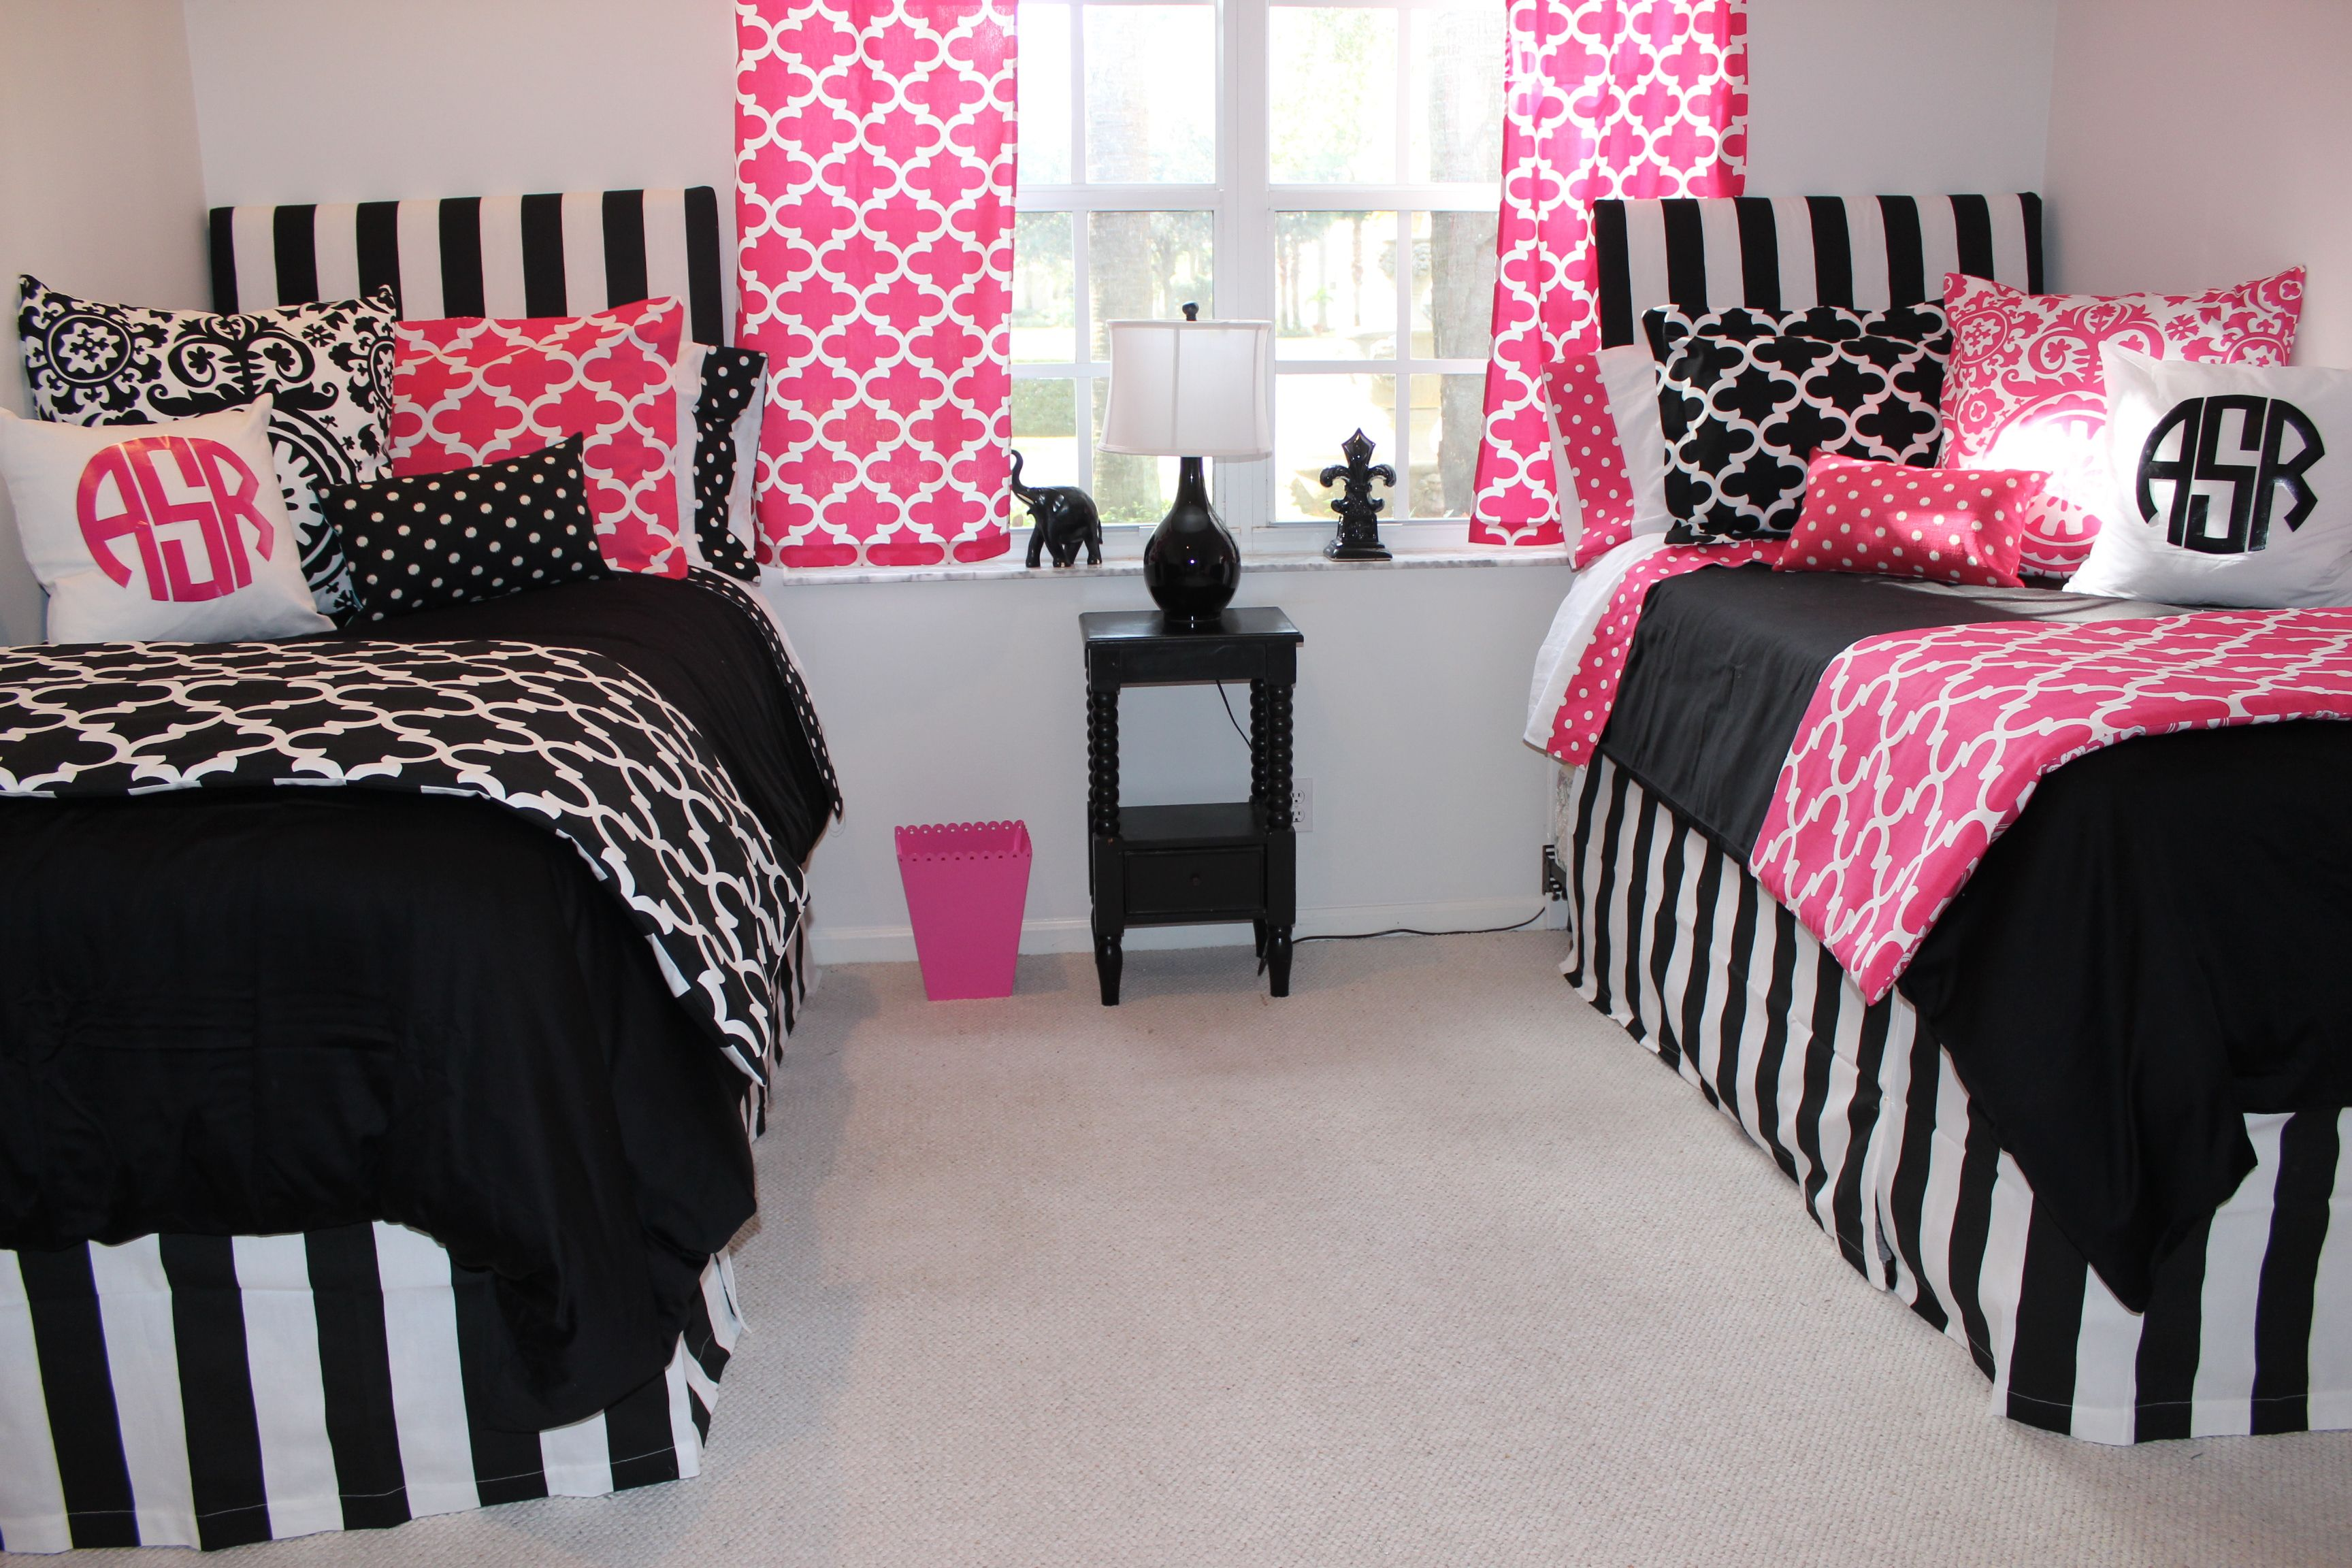 Hot Pink And Black Dorm Room Bedding Design Matching Dorm